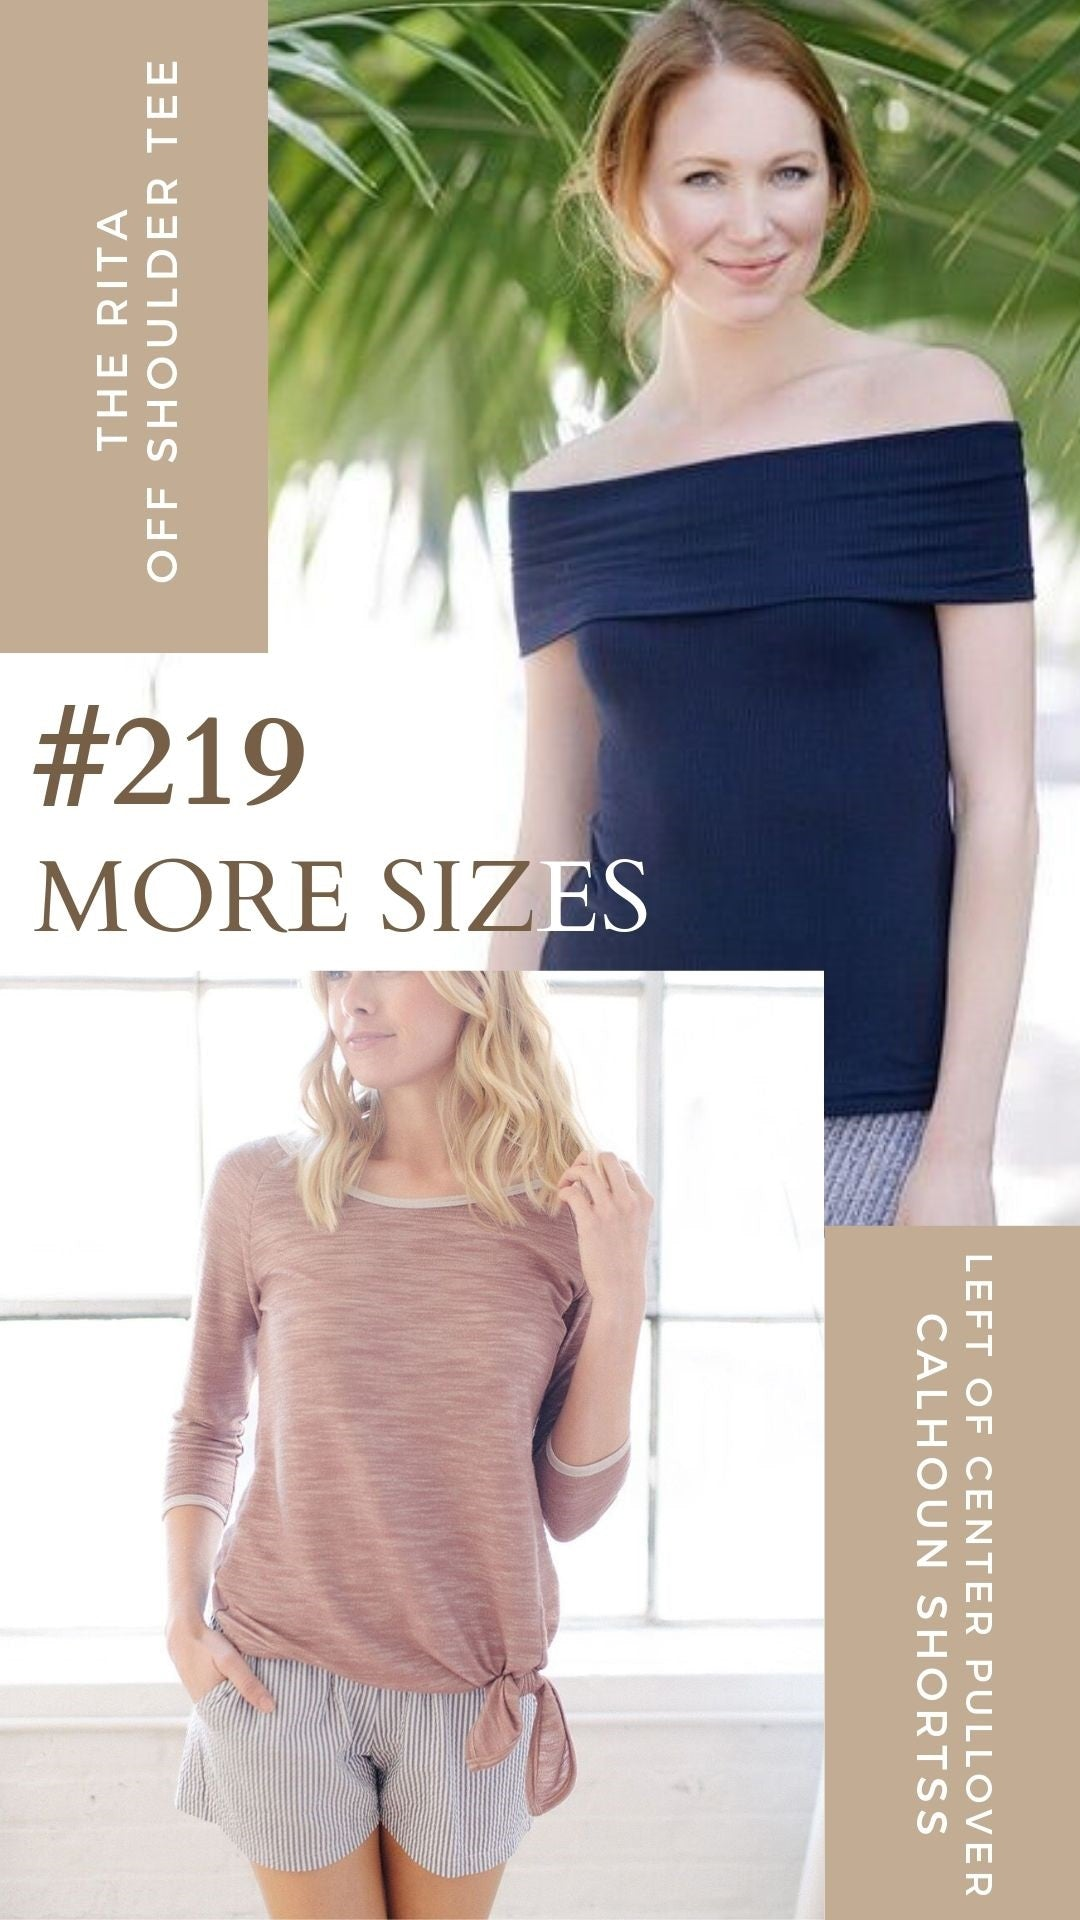 KOKOON Thrift Group #219 More Sizes Blush Sweatshirt and Calhoun Shorts and Navy Rita Tee